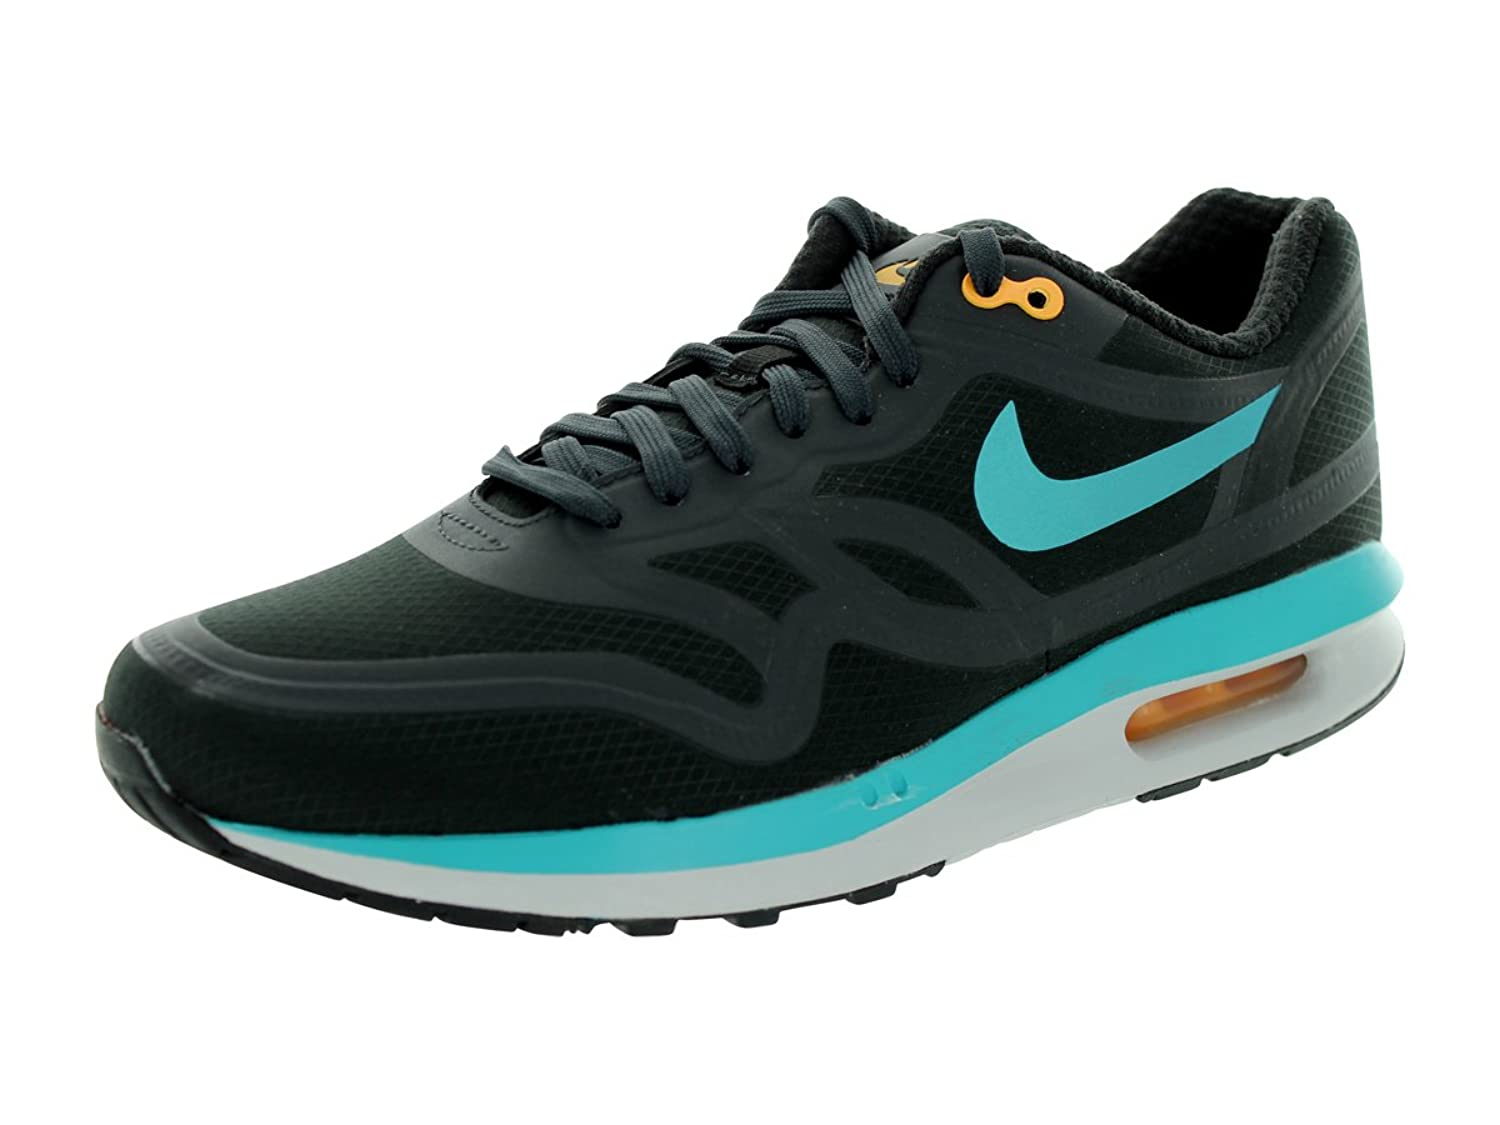 nike men's air max lunar1 wr running shoe